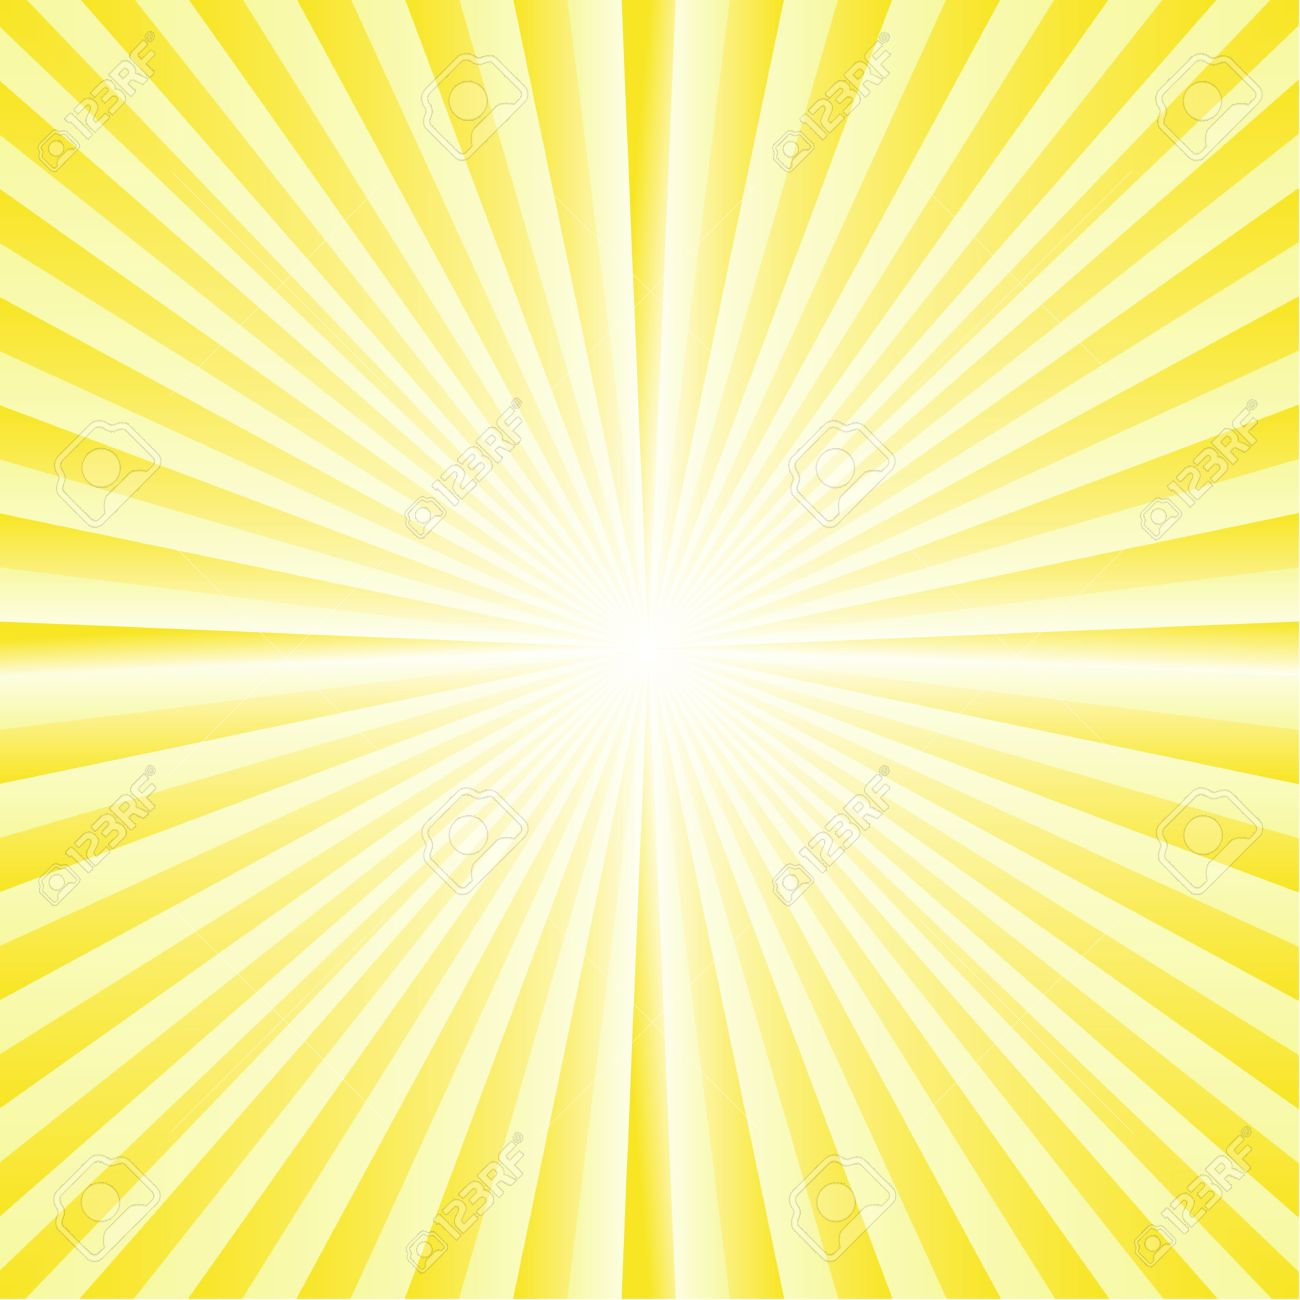 Yellow Rays Background Royalty Free Cliparts, Vectors, And Stock ... for Yellow Light Rays Background  166kxo